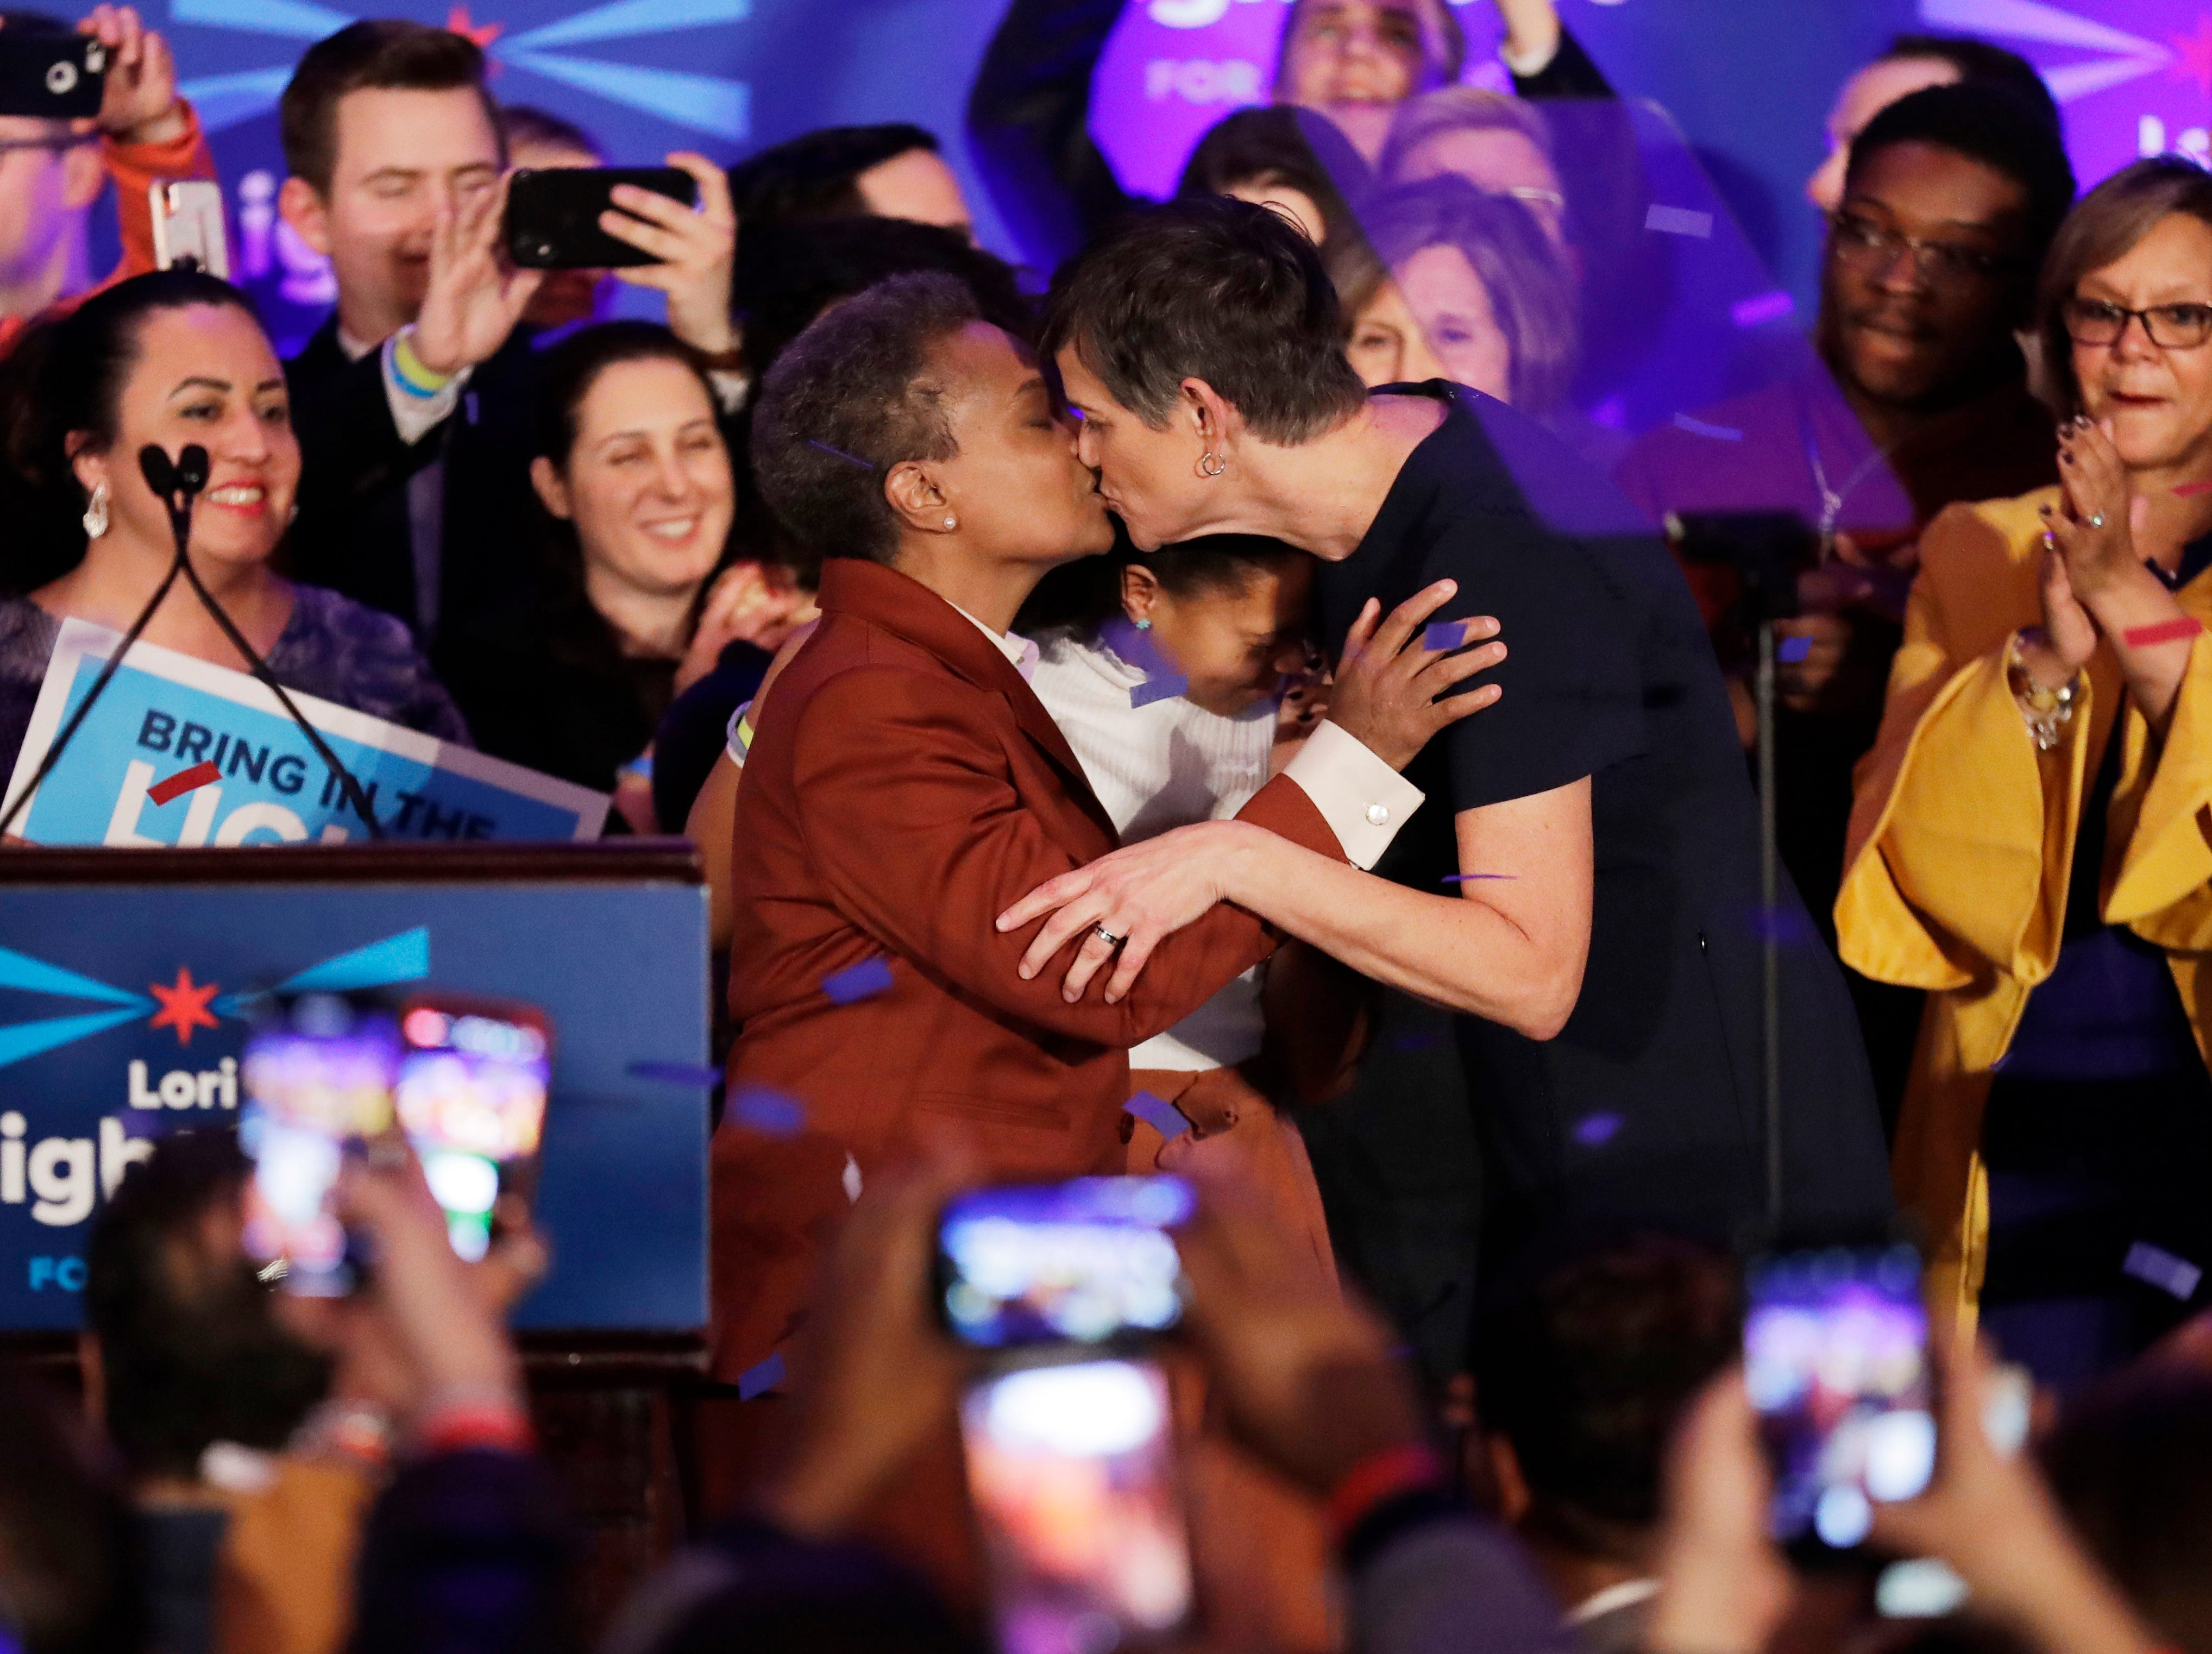 Lori Lightfoot, left, kisses her spouse Amy Eshleman at her election night party Tuesday, April 2, 2019, in Chicago. Lori Lightfoot elected Chicago mayor, making her the first African-American woman to lead the city.